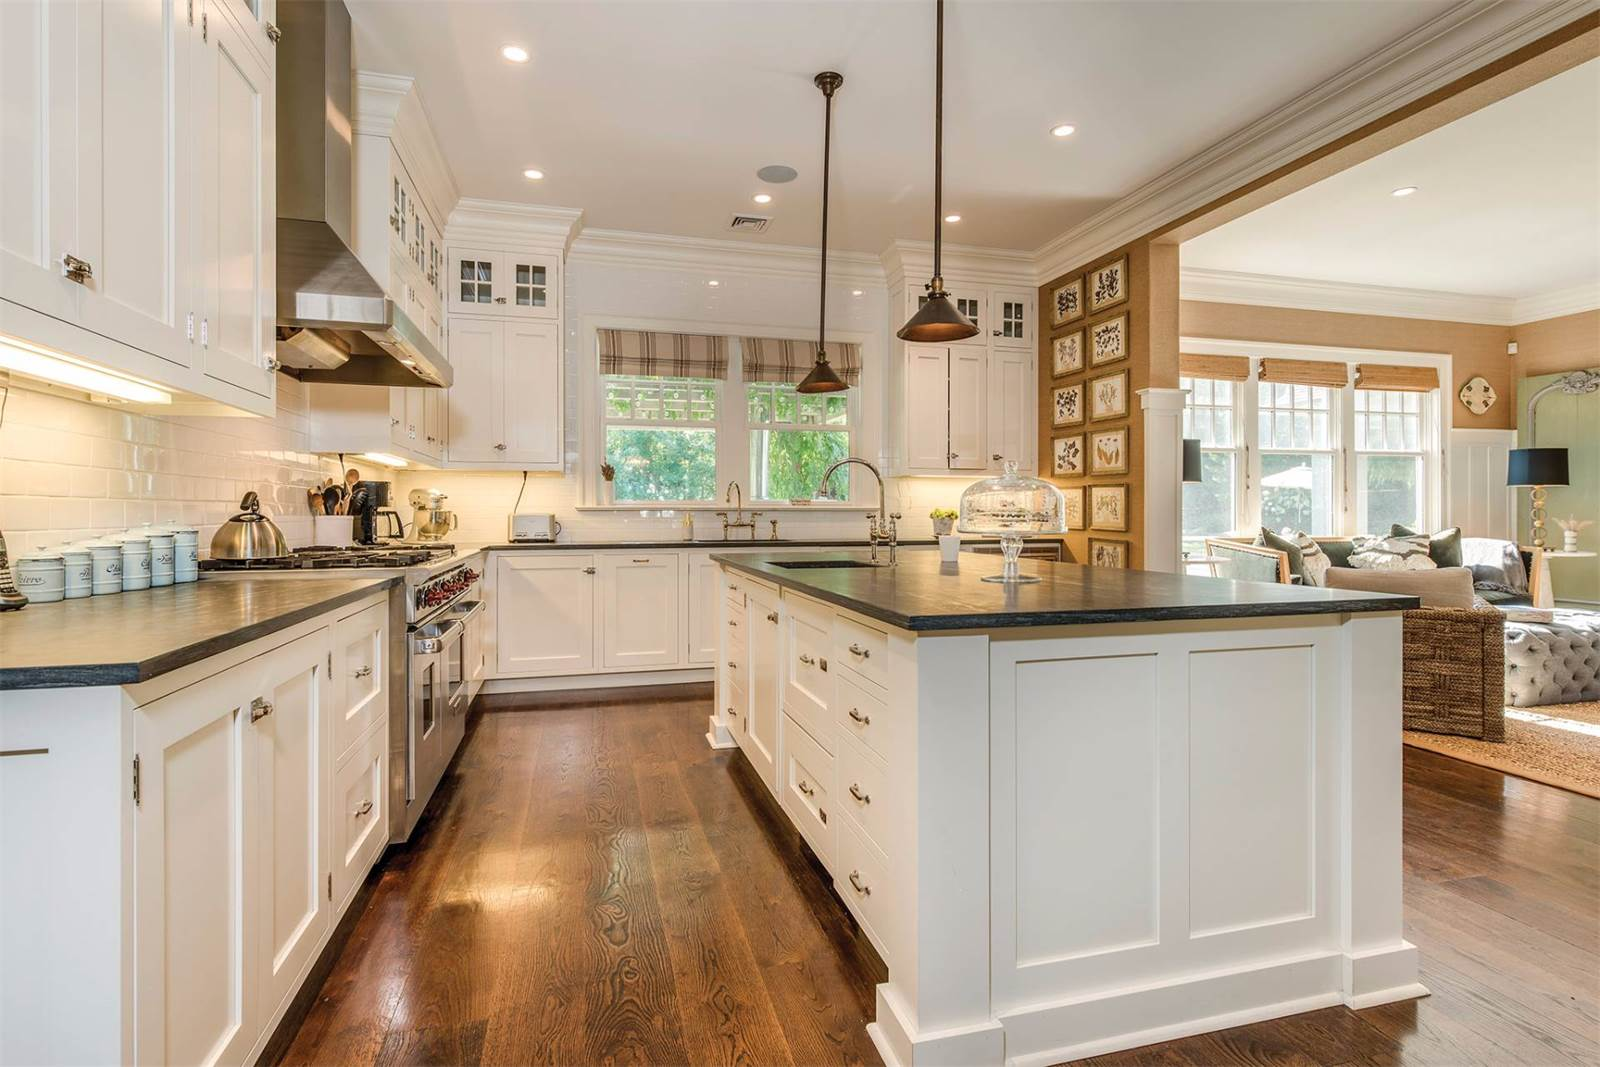 With Stainless Steel Appliances A Third Oven Restaurant Grade Stove And Butlers Pantry It Leads Into The Formal Dining Room